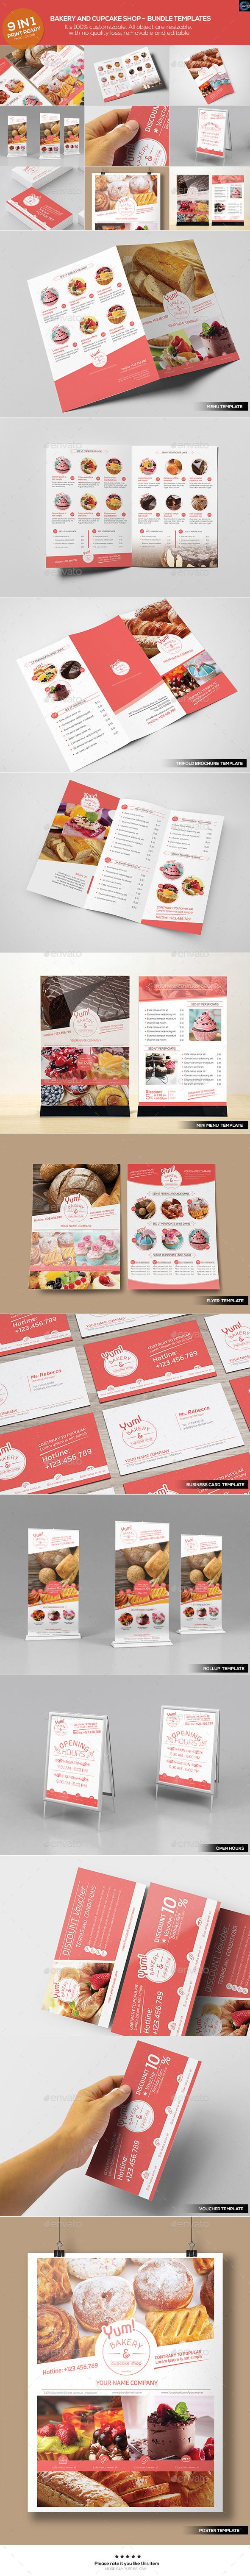 Bakery & Cupcake Shop Bundle Templates